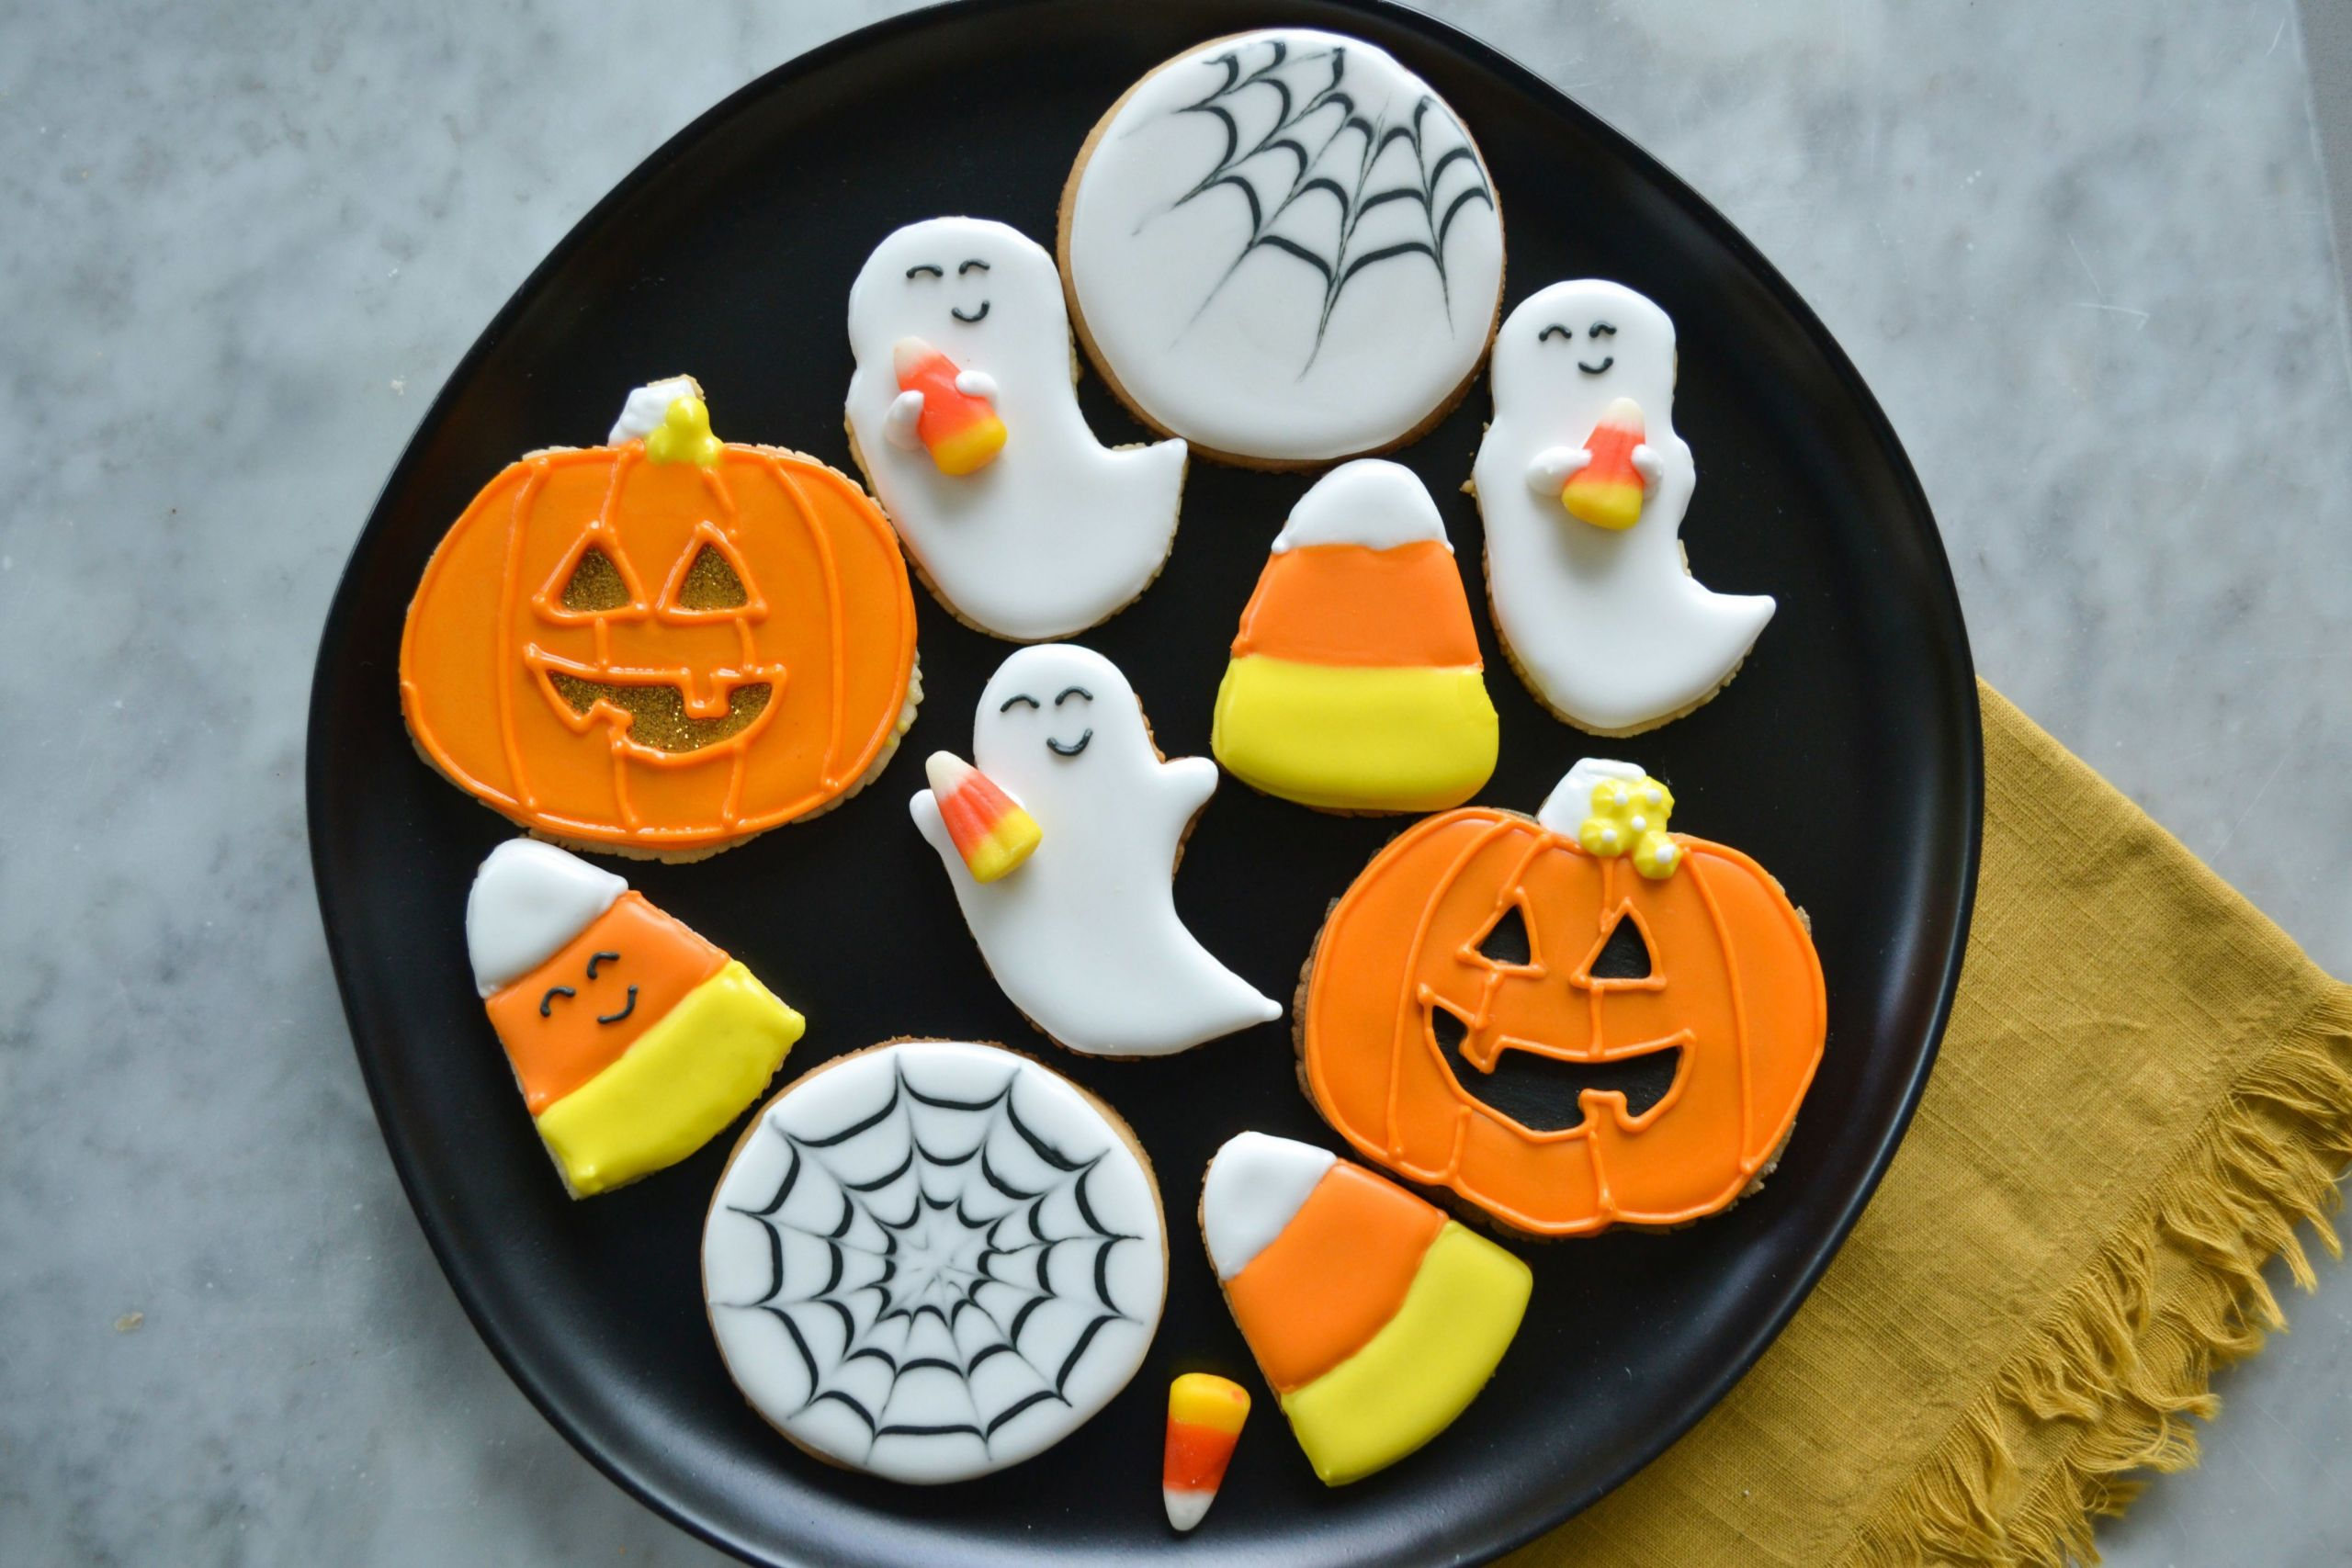 Halloween Cookies For Sale  Decorated Halloween Cookies For Sale Room & All